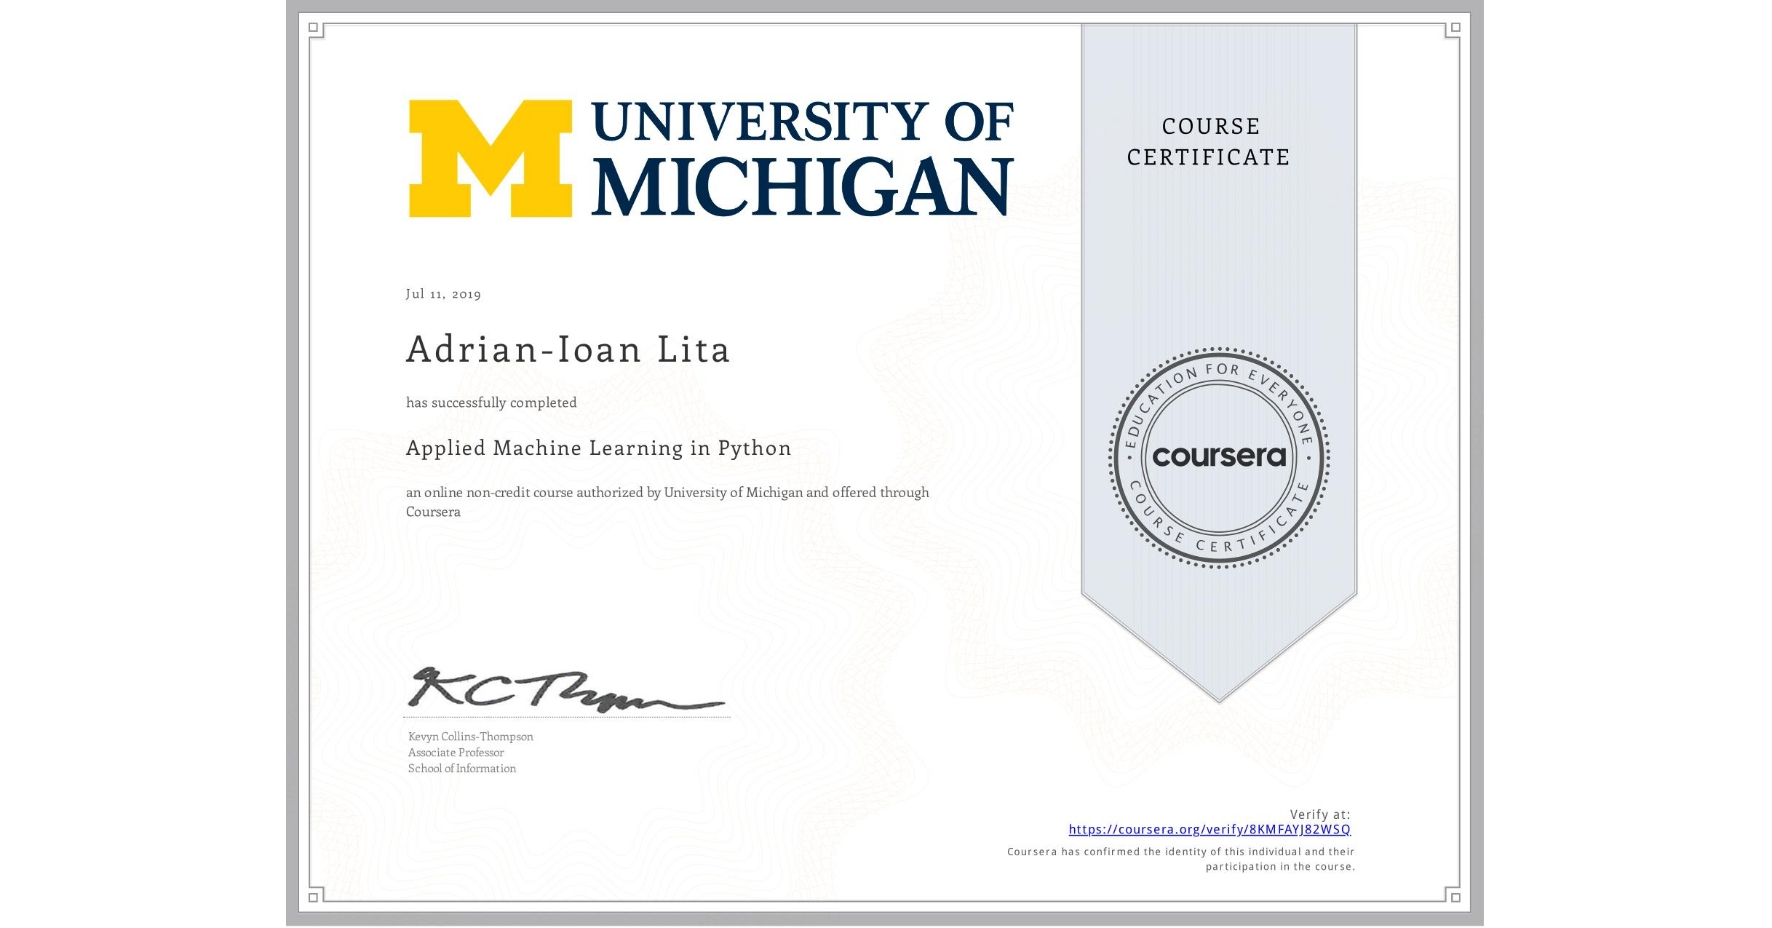 View certificate for Adrian-Ioan Lita, Applied Machine Learning in Python, an online non-credit course authorized by University of Michigan and offered through Coursera